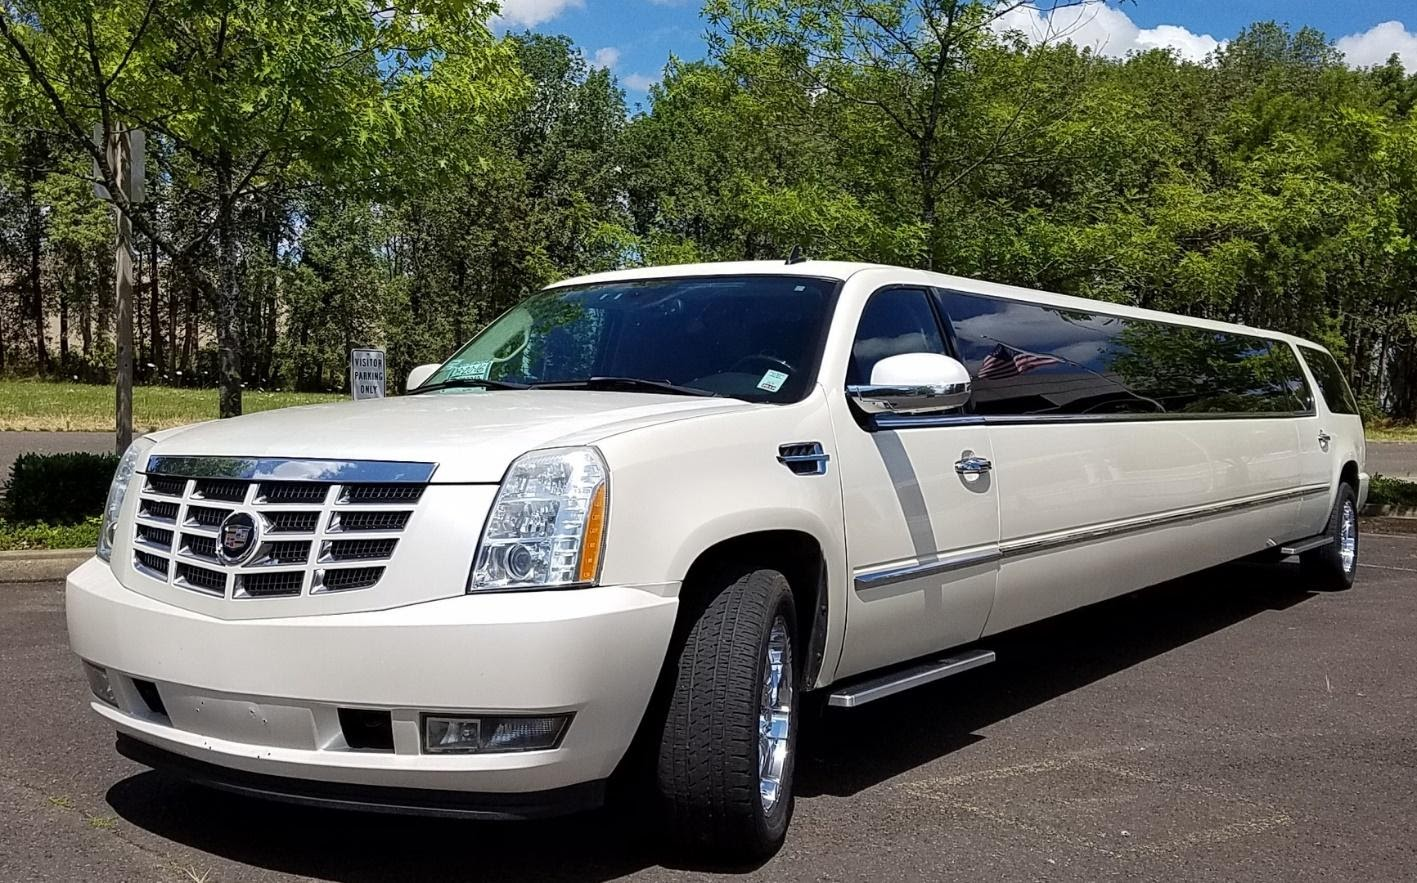 Luxurious and Expensive Limousines